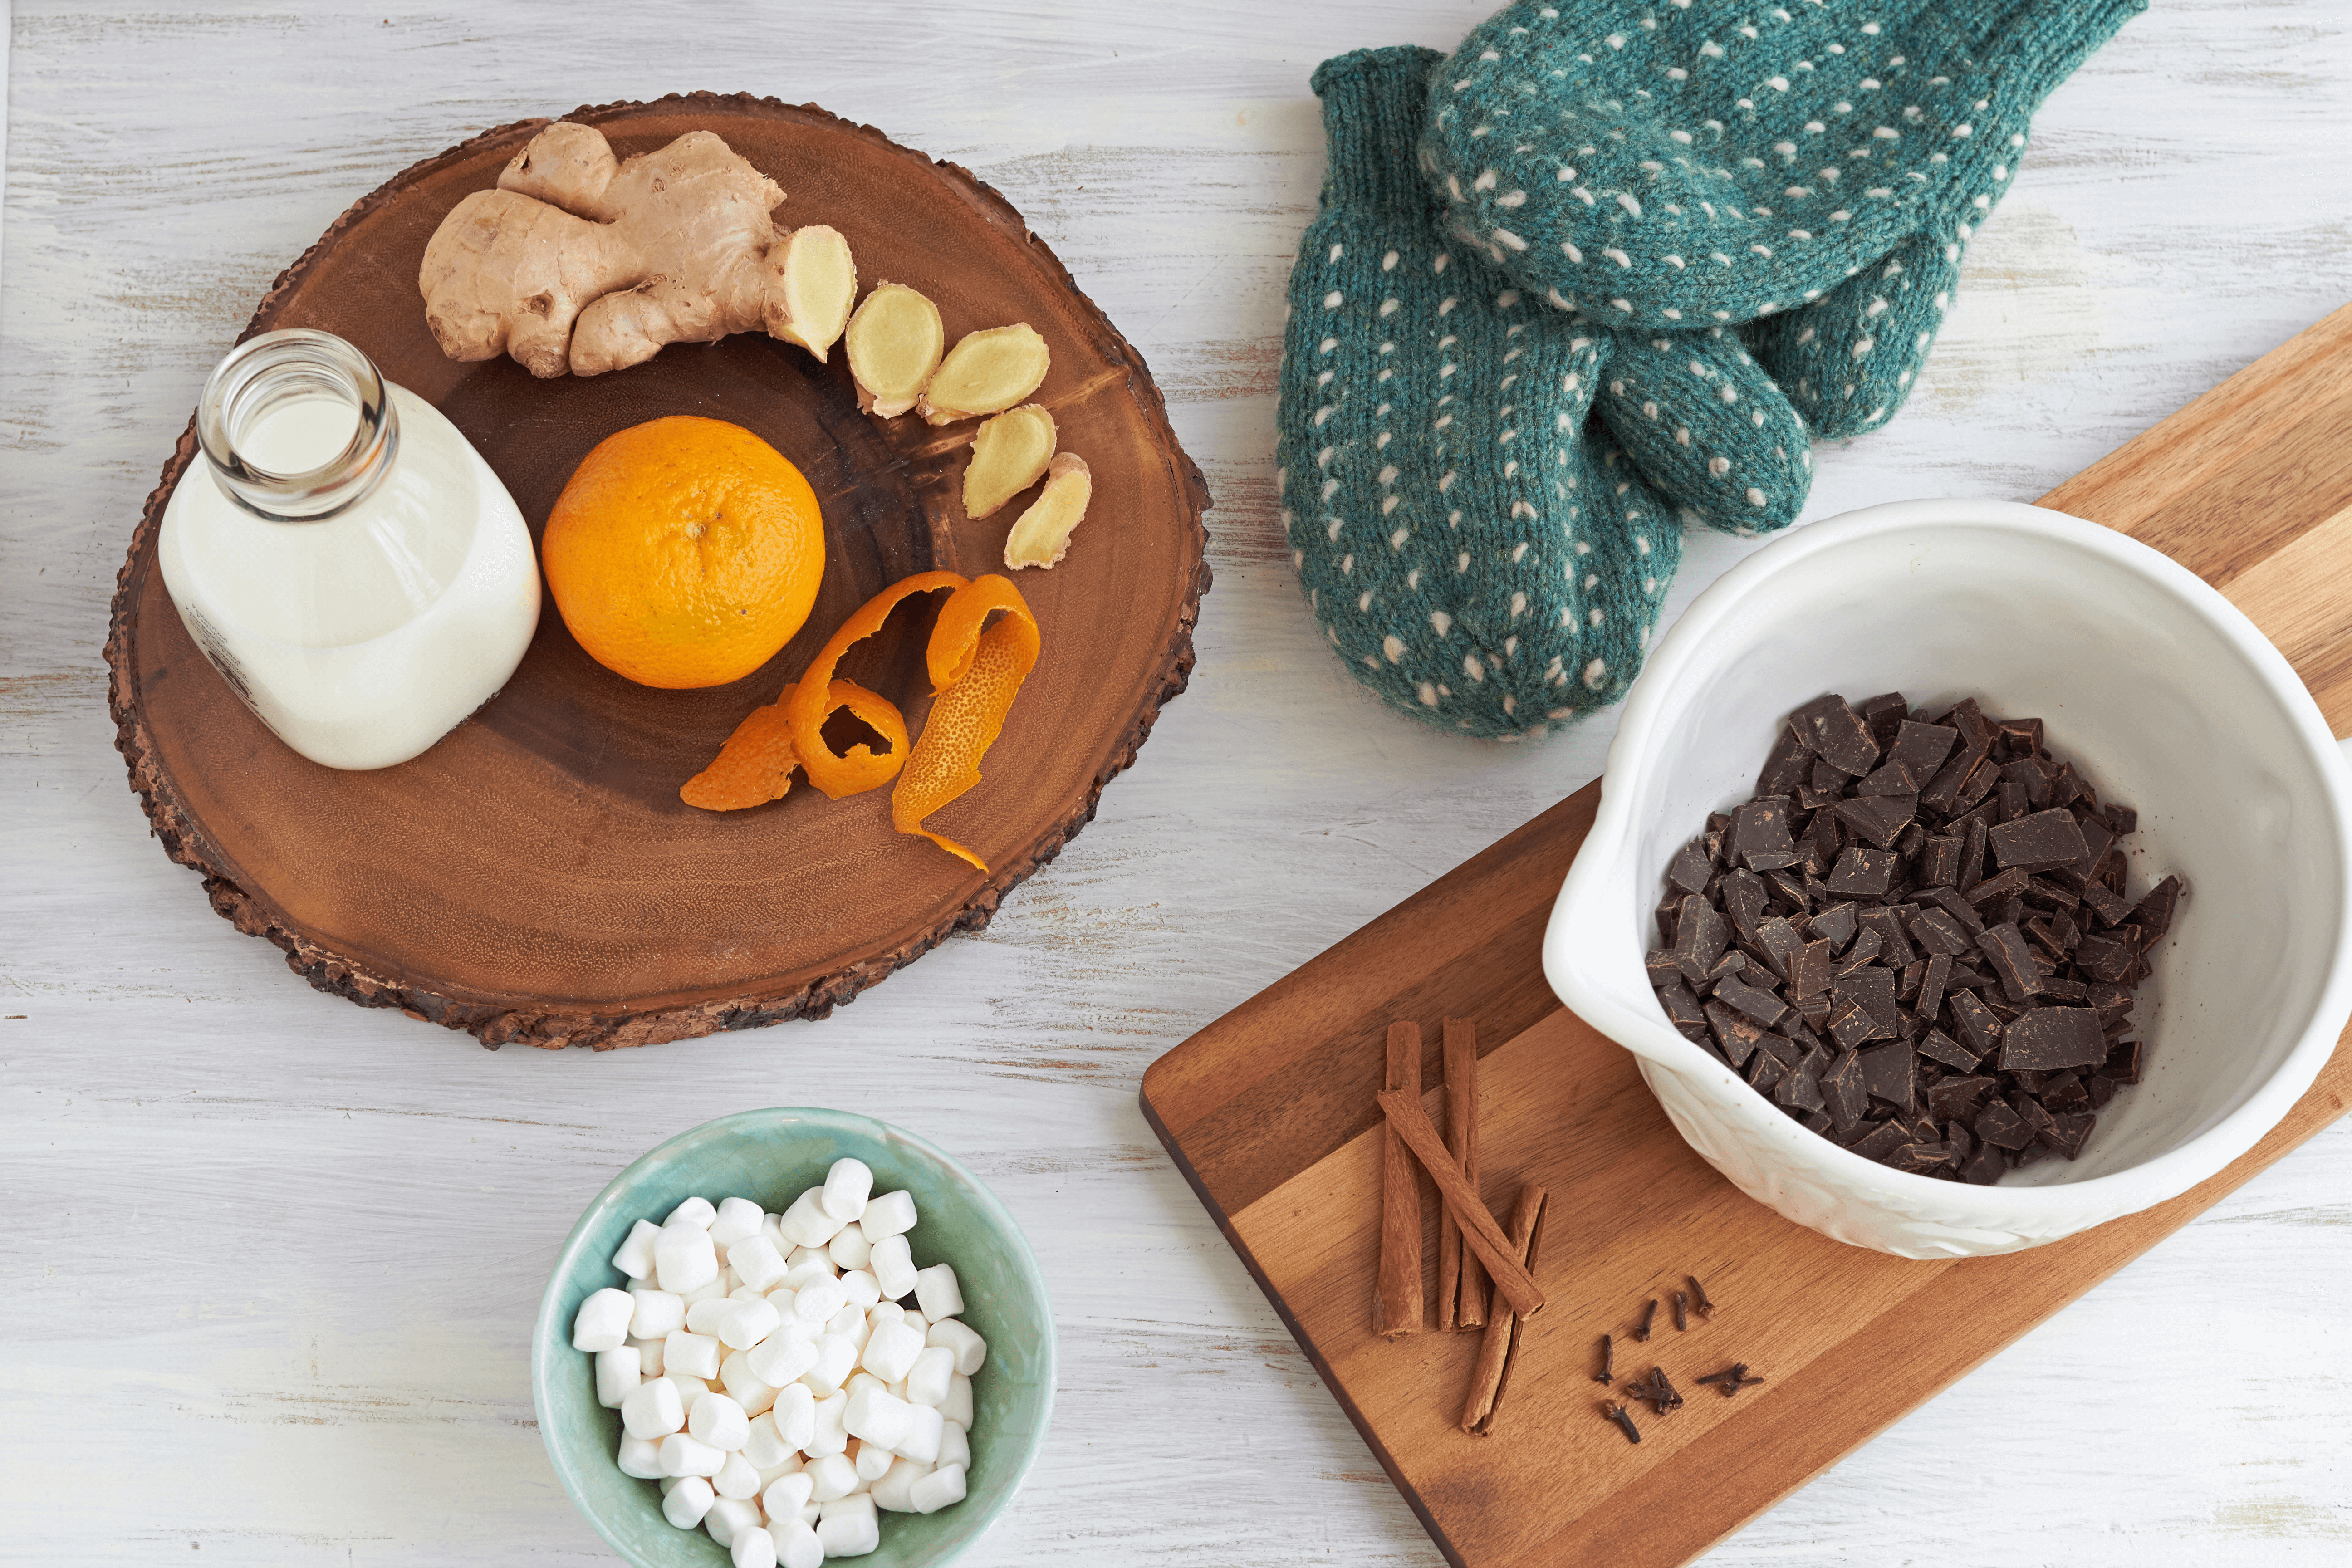 Milk, spices, and chocolate for The Messy Baker Christmas Spiced Hot Chocolate